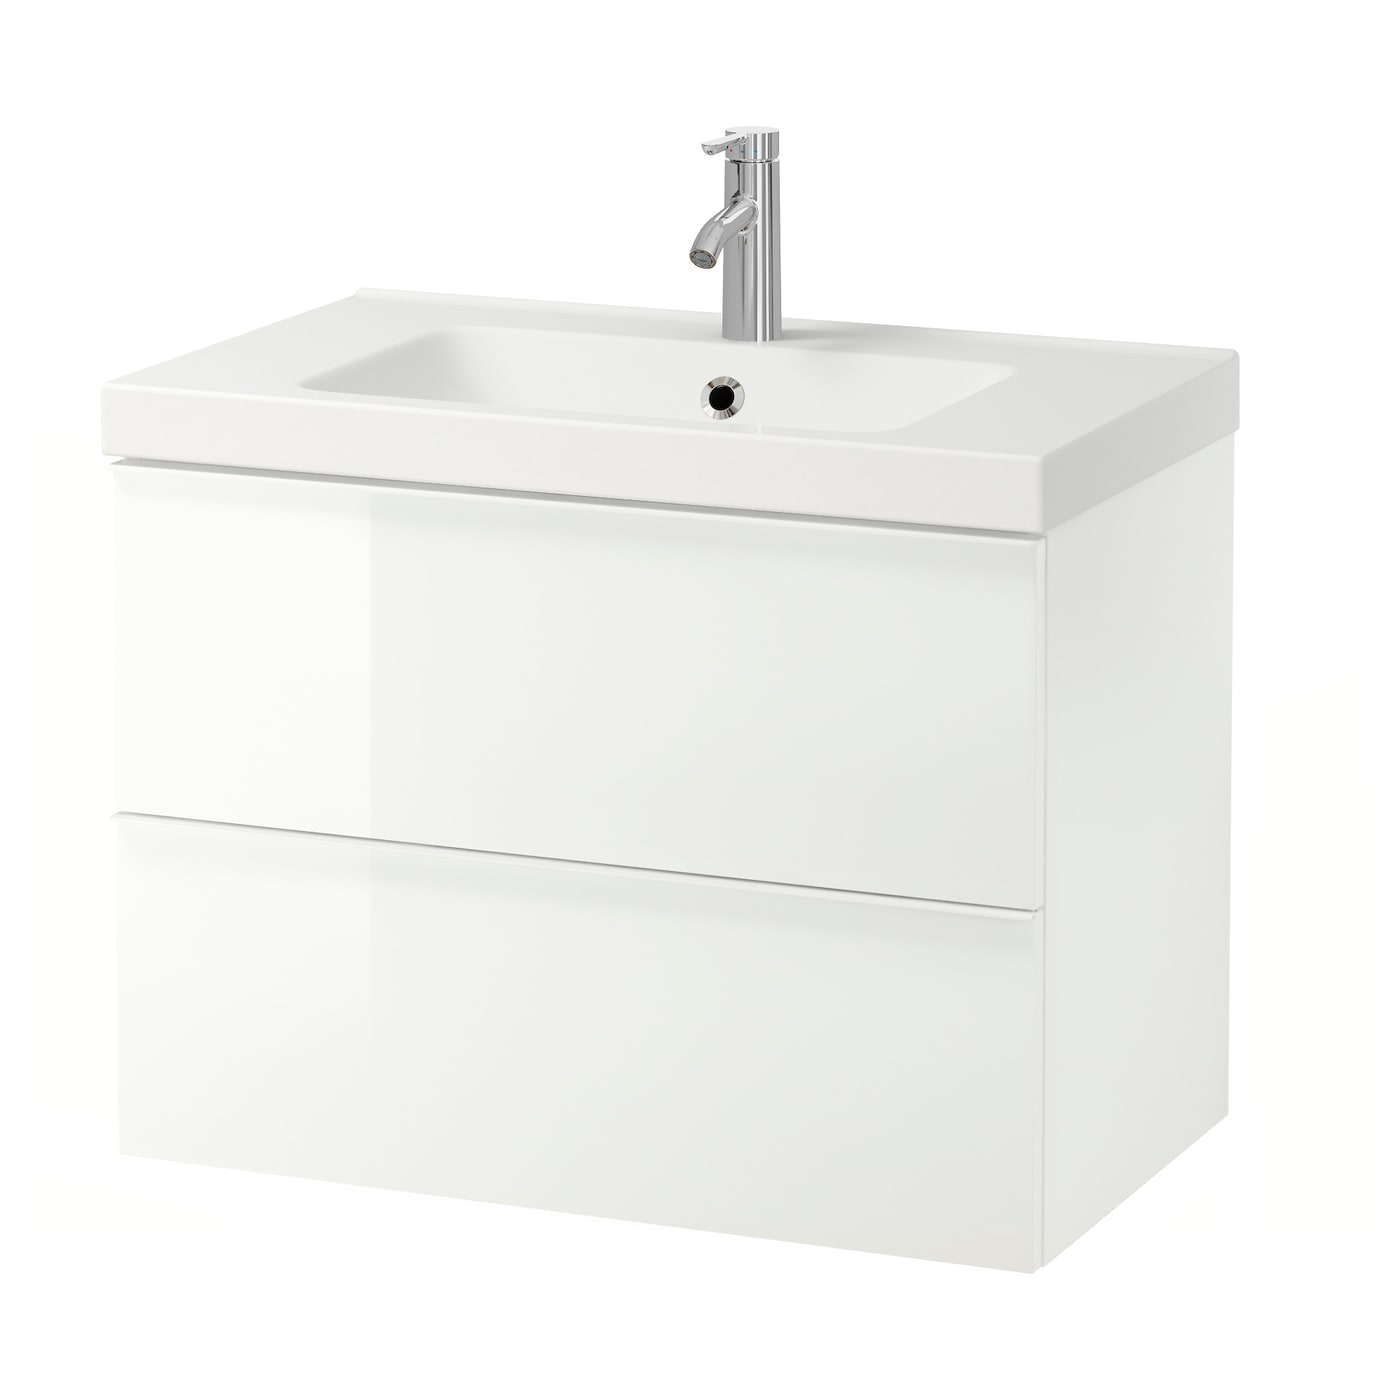 Odensvik godmorgon meuble lavabo 2tir brillant blanc for Ikea meuble lavabo